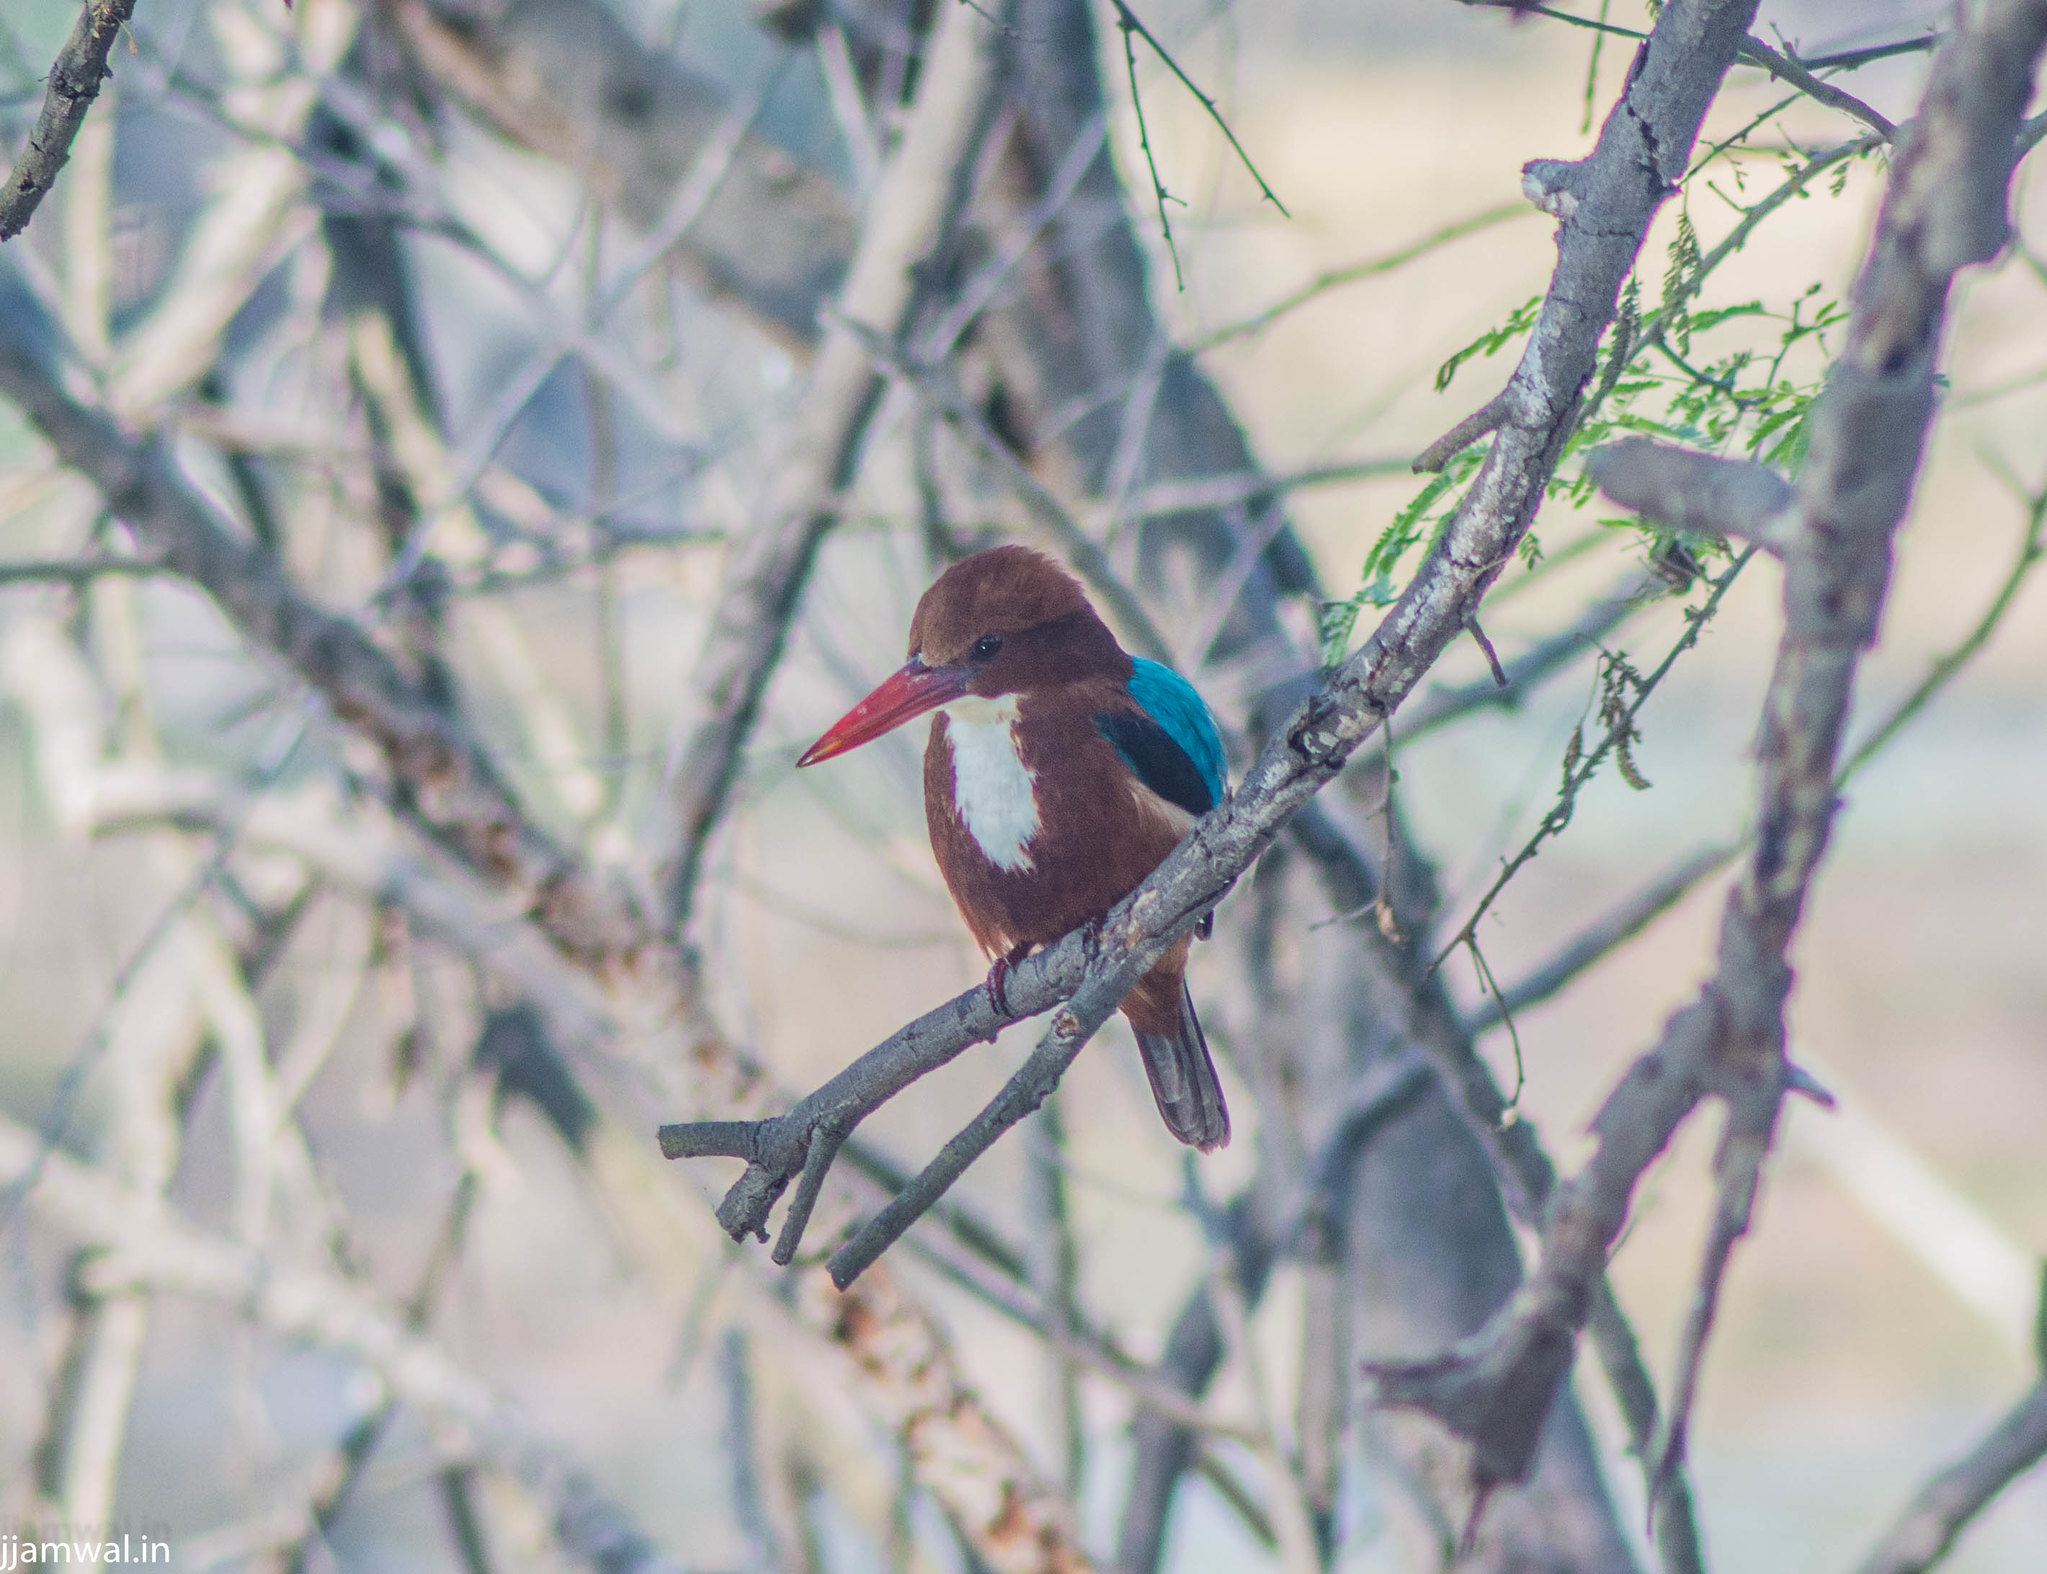 White-thoated Kingfisher (Halcyon smyrnensis)